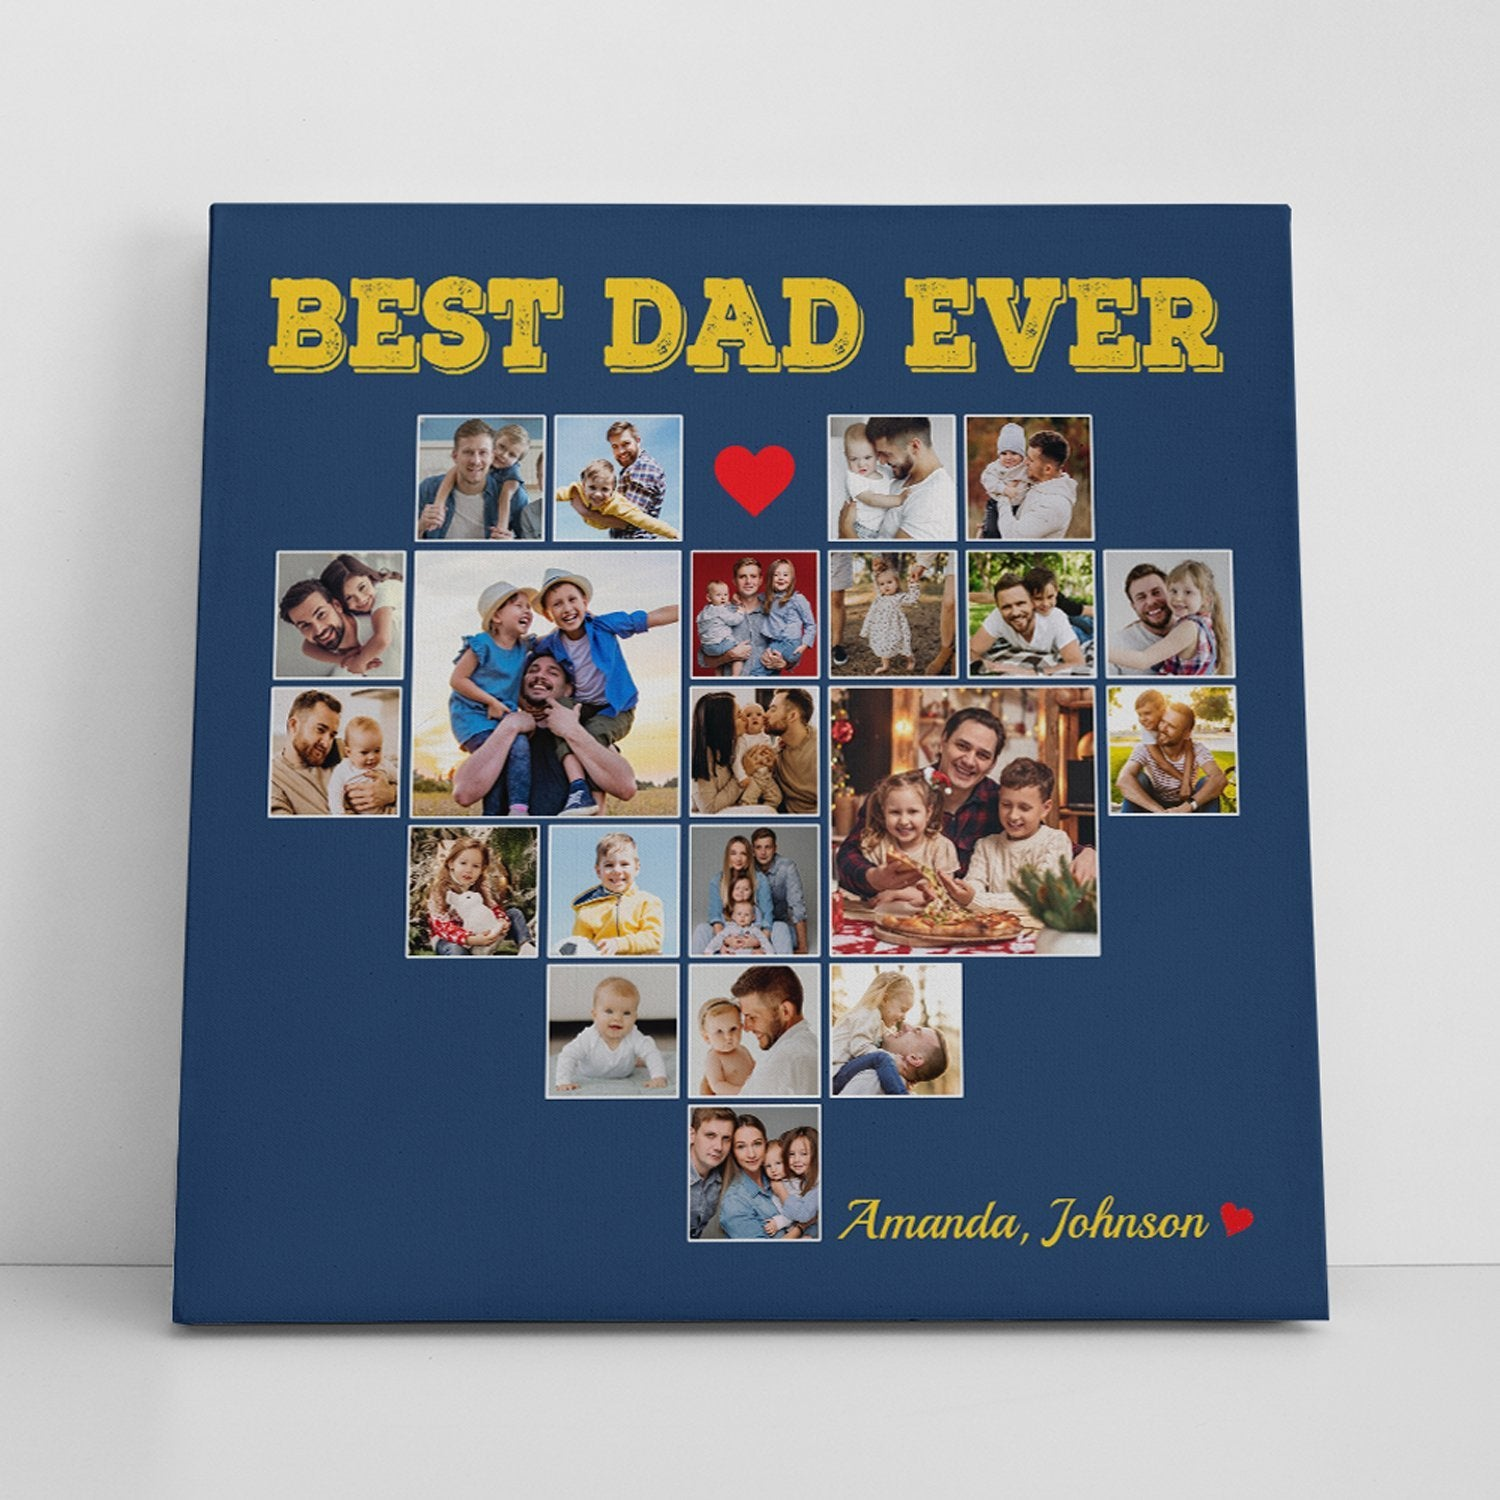 """If you always smile when remembering every memory about your best dad, then why not say """" i love my dad"""" by a Photo Collage Canvas Wall Art personalized with your favorite pictures of your siblings with your old man. This unique gift idea is sure to be one of the most personalized fathers day gifts that bring him back to the moments when you two repaired the bike, flew the kite, or simply when he smiled happily when you called him """"daddy""""."""